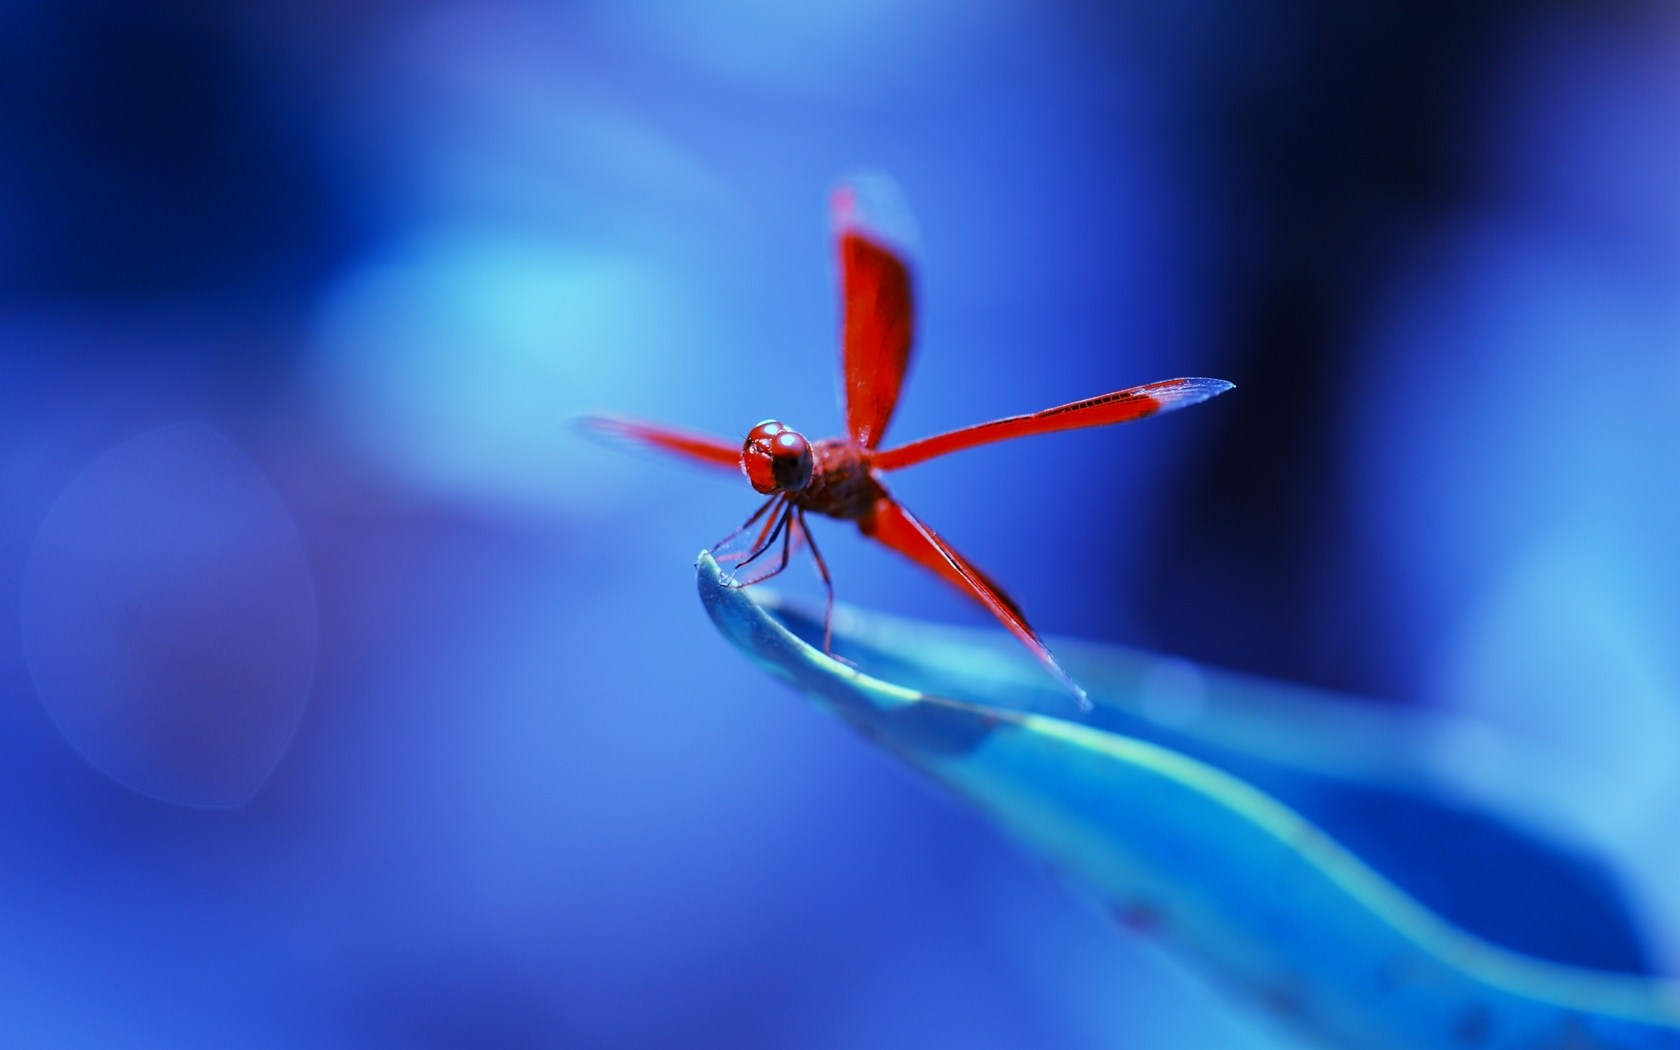 Dragonflies images Dragonfly HD wallpaper and background photos 1680x1050